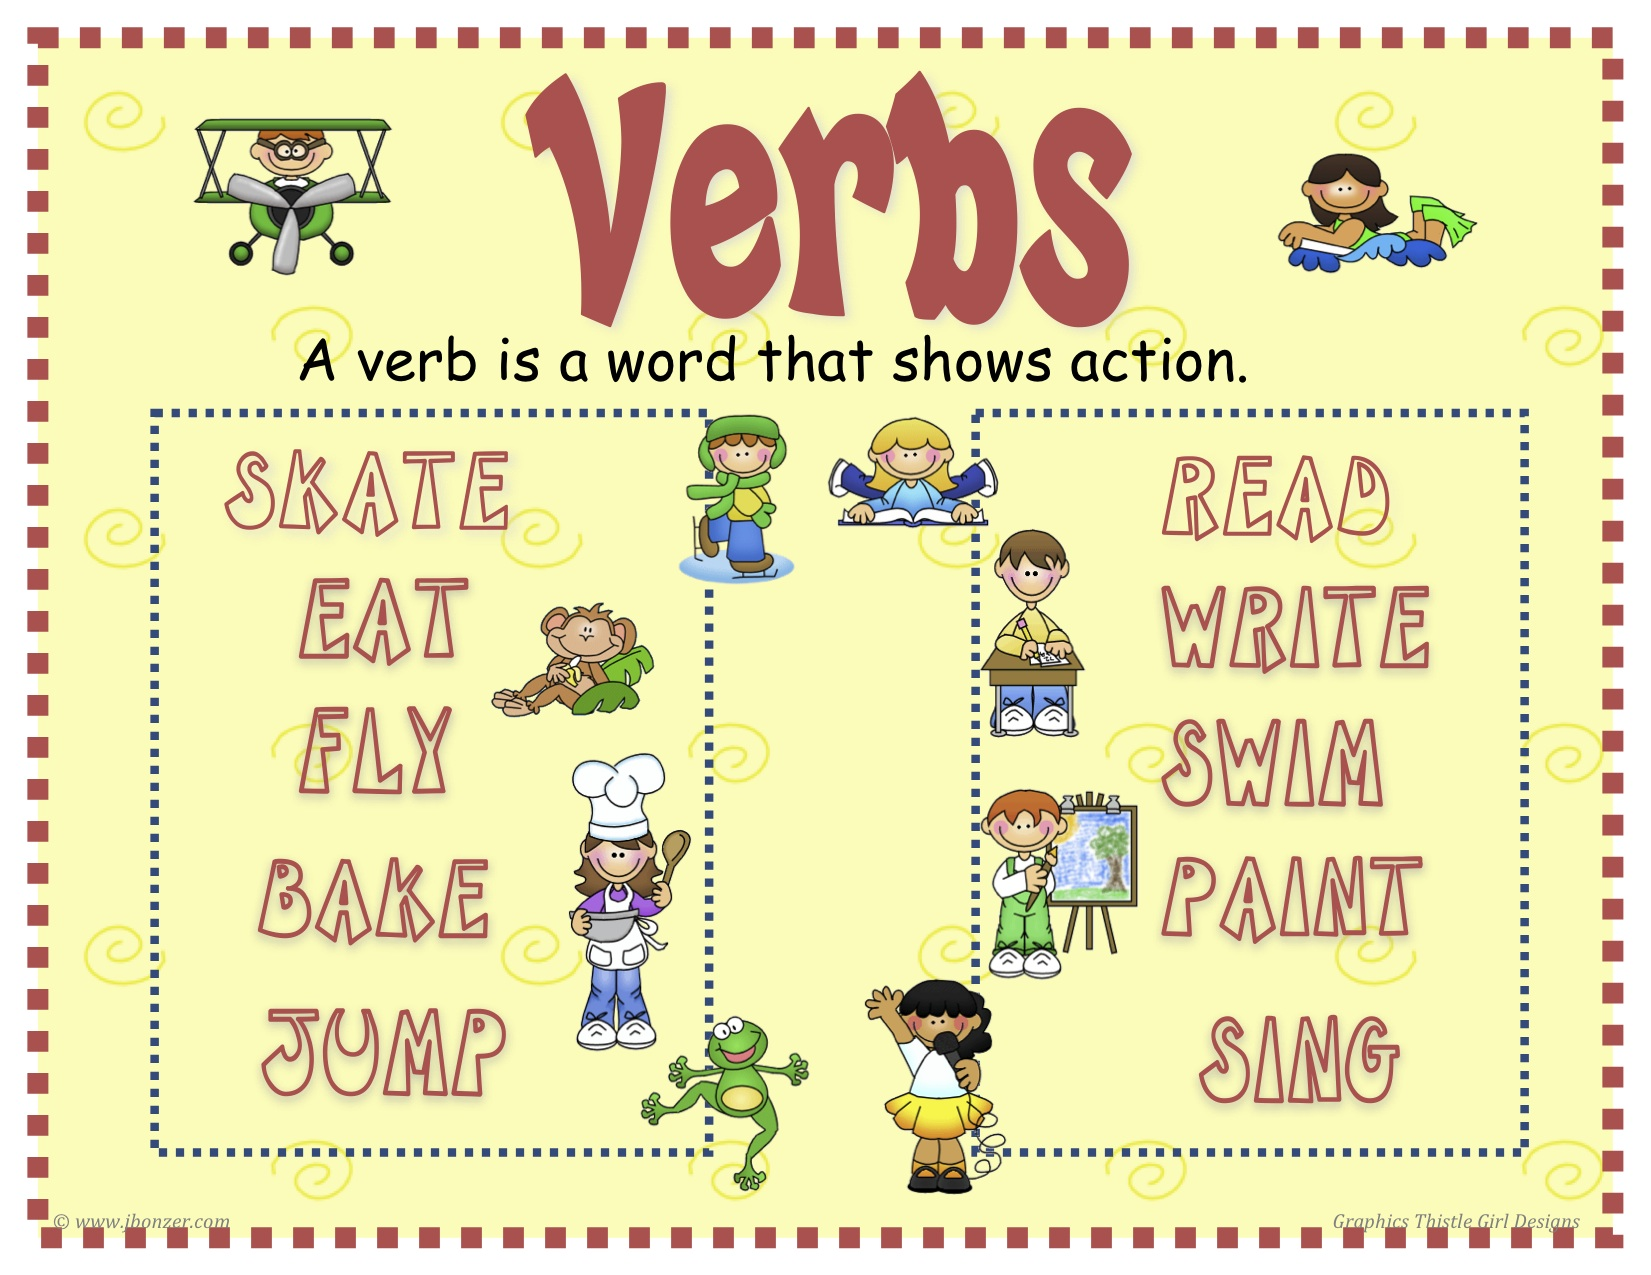 Worksheet Adjectives Worksheets Ks1 verb worksheets ks1 abitlikethis on adjectives as well simple present tense